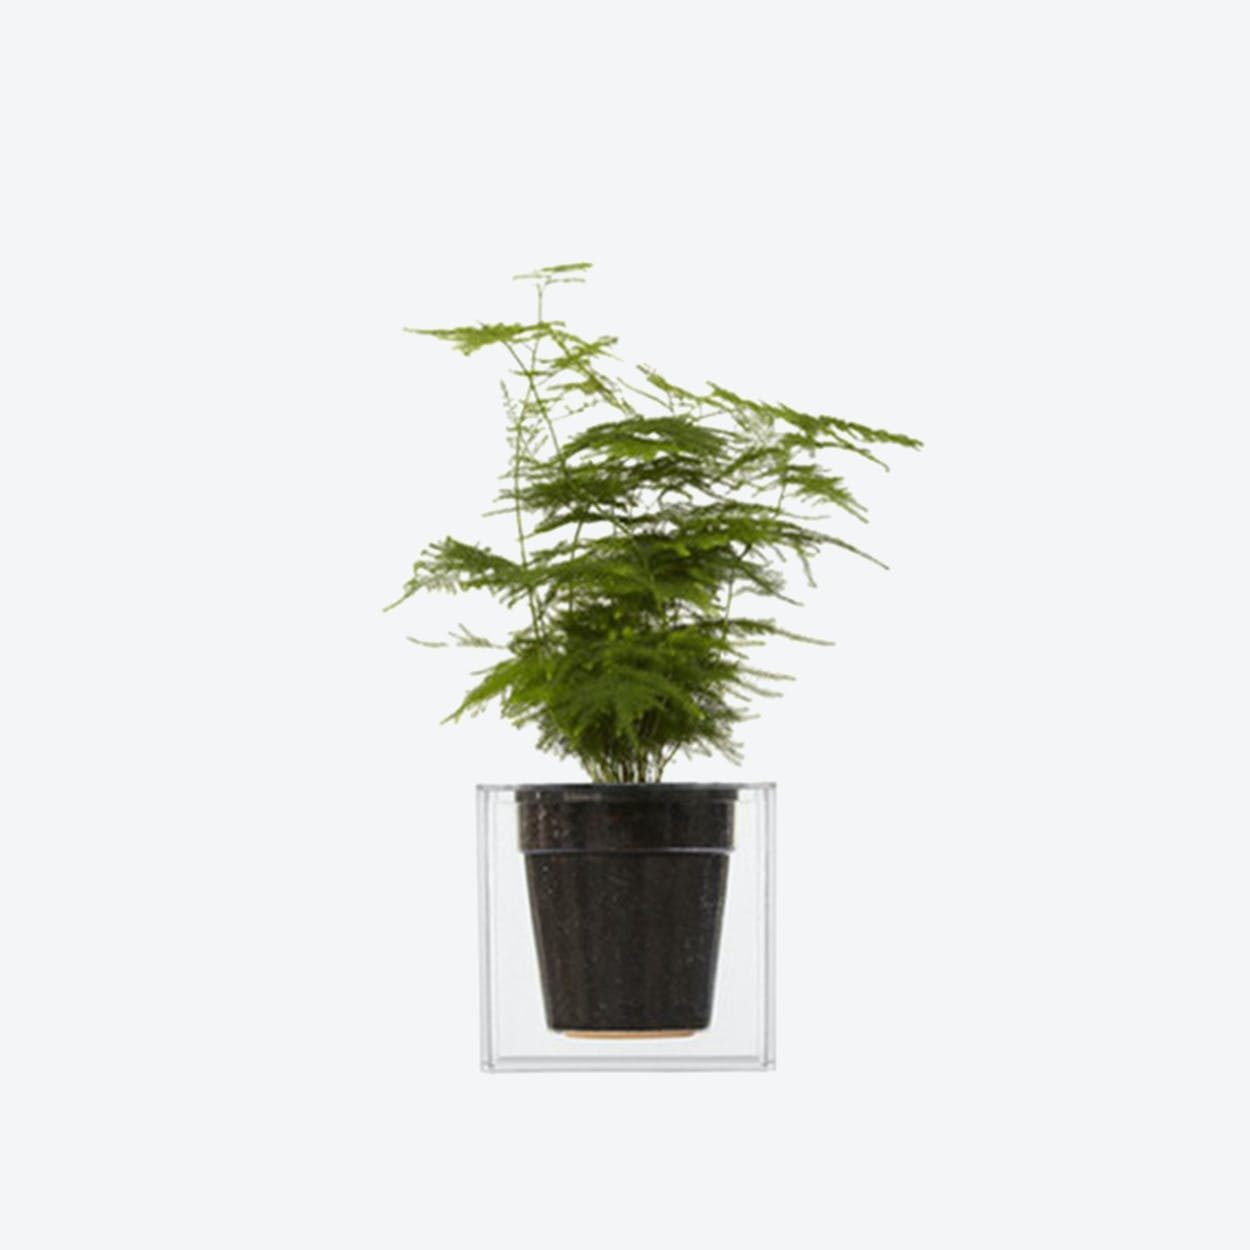 Cube Planter Small Transparent